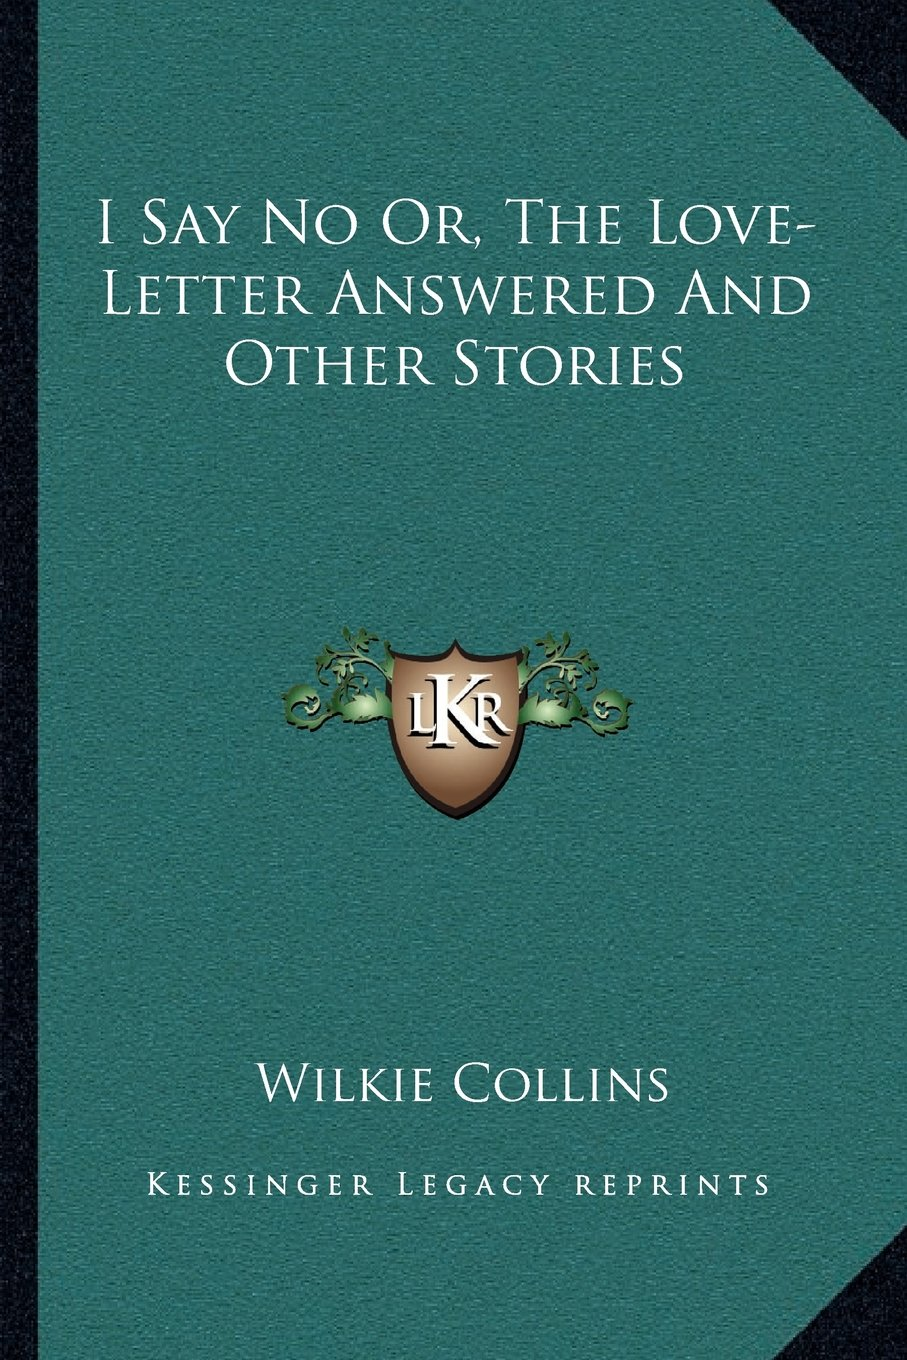 Download I Say No Or, The Love-Letter Answered And Other Stories ebook